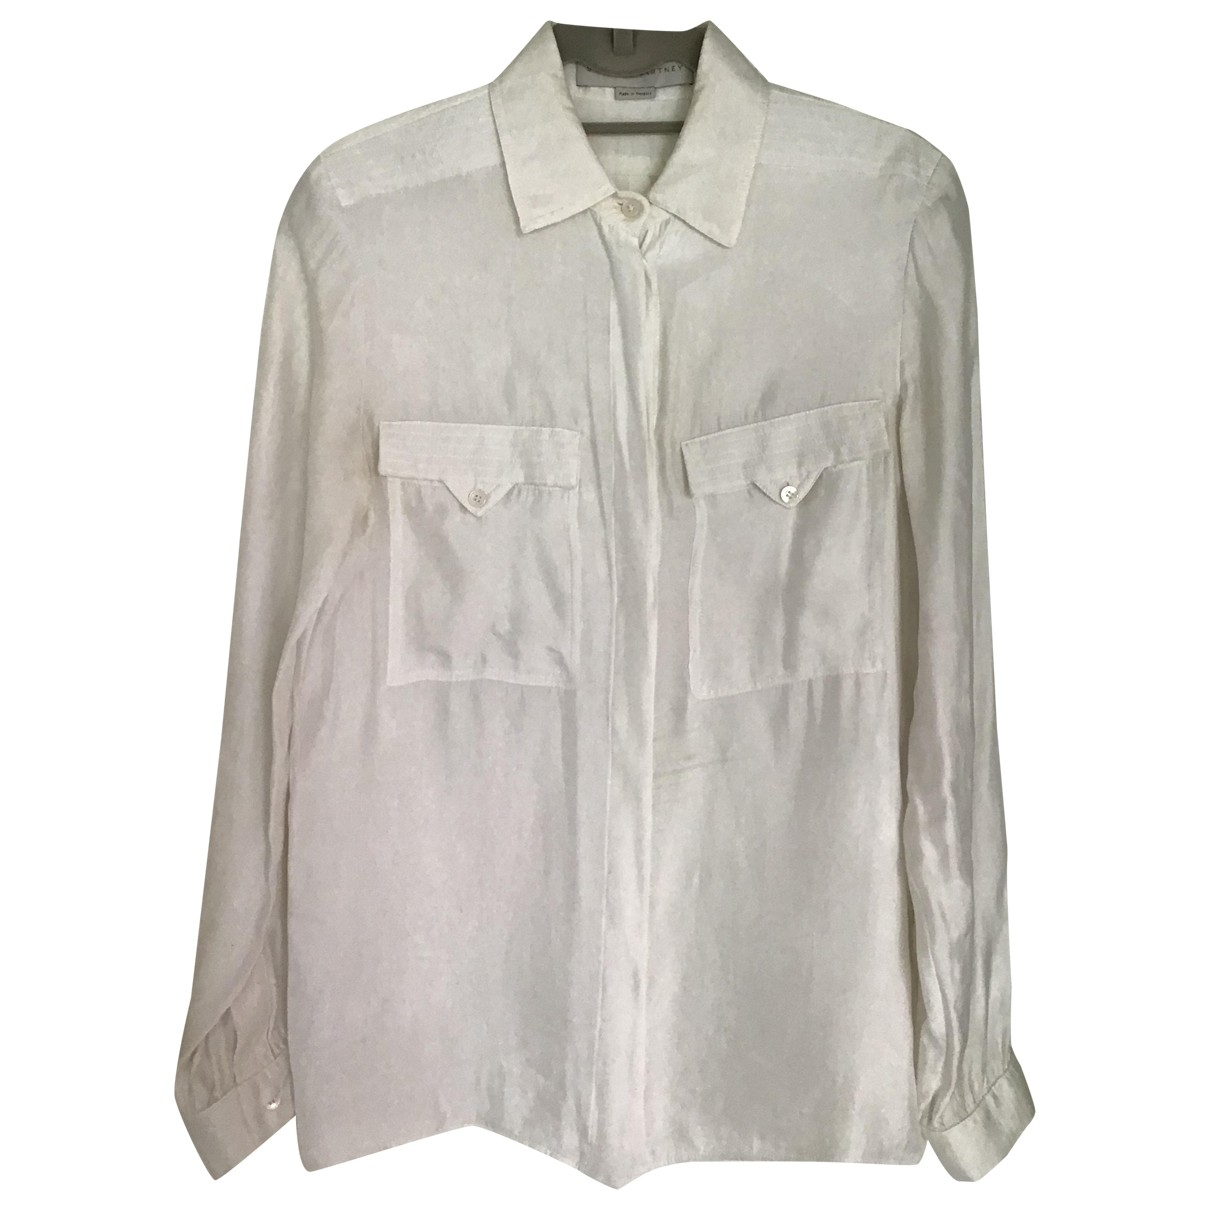 Stella Mccartney \N Ecru  top for Women 42 IT